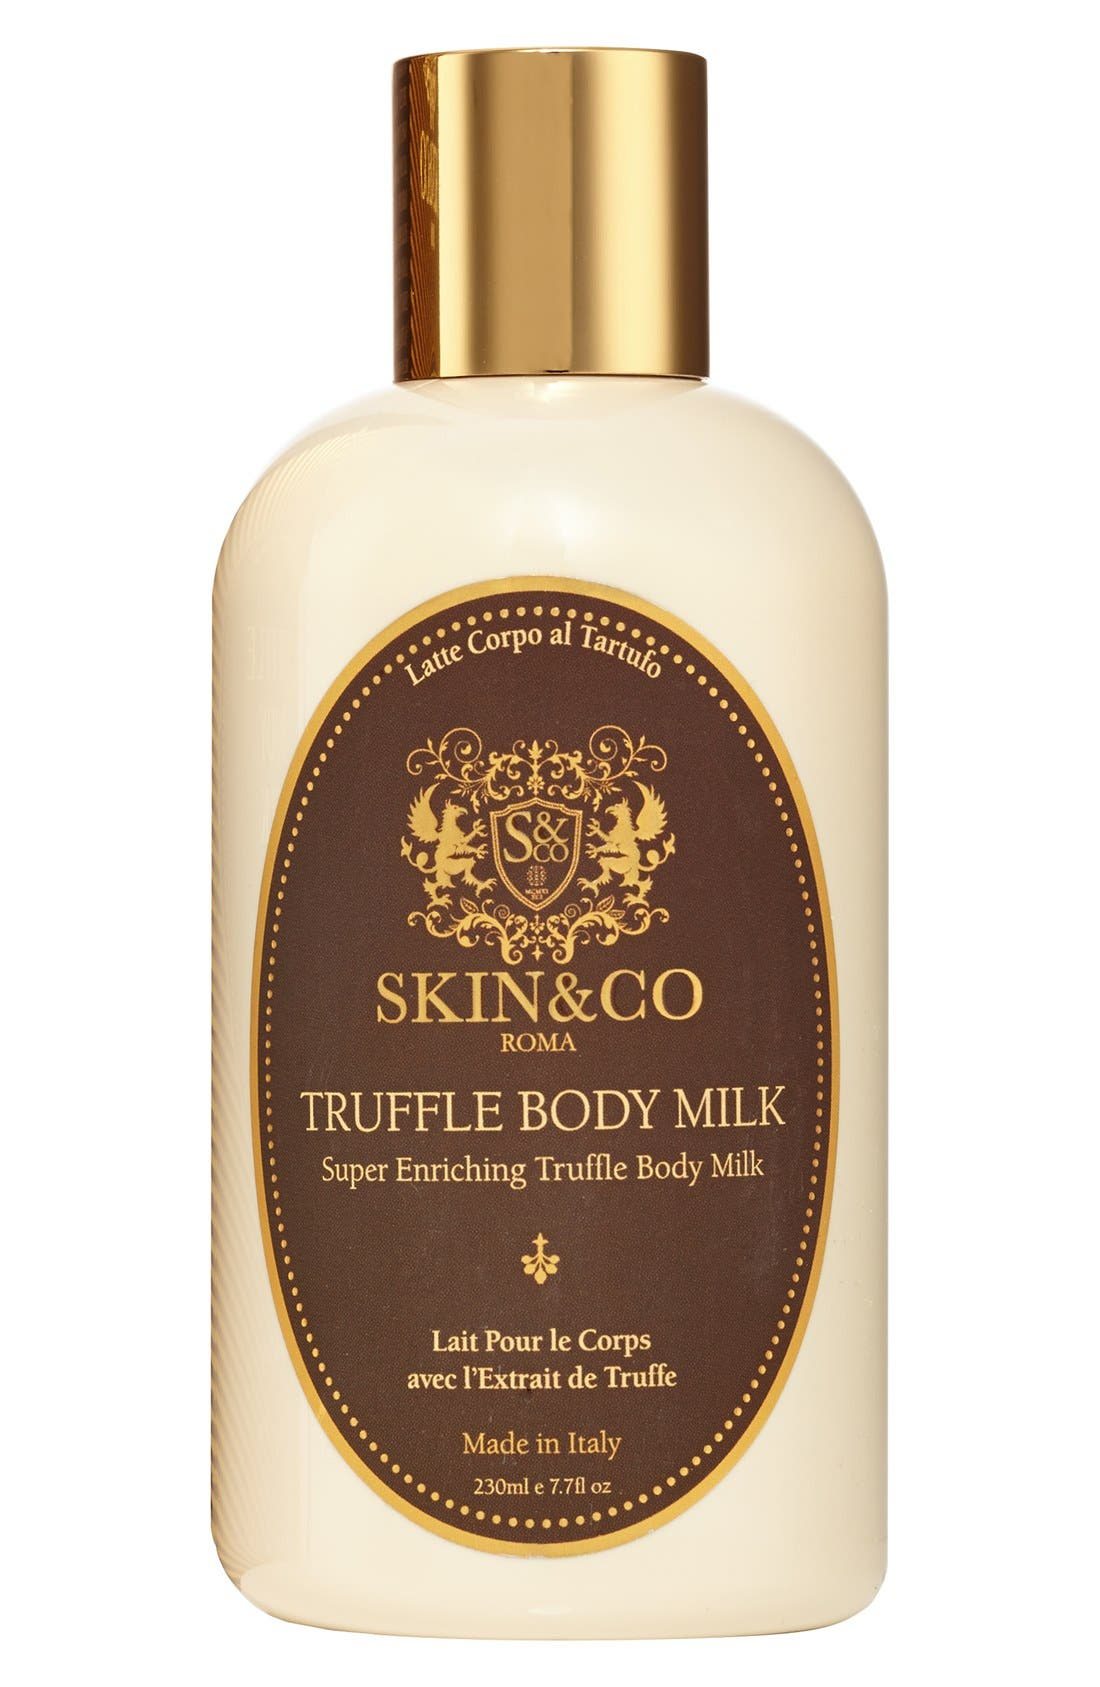 SKIN&CO Truffle Body Milk